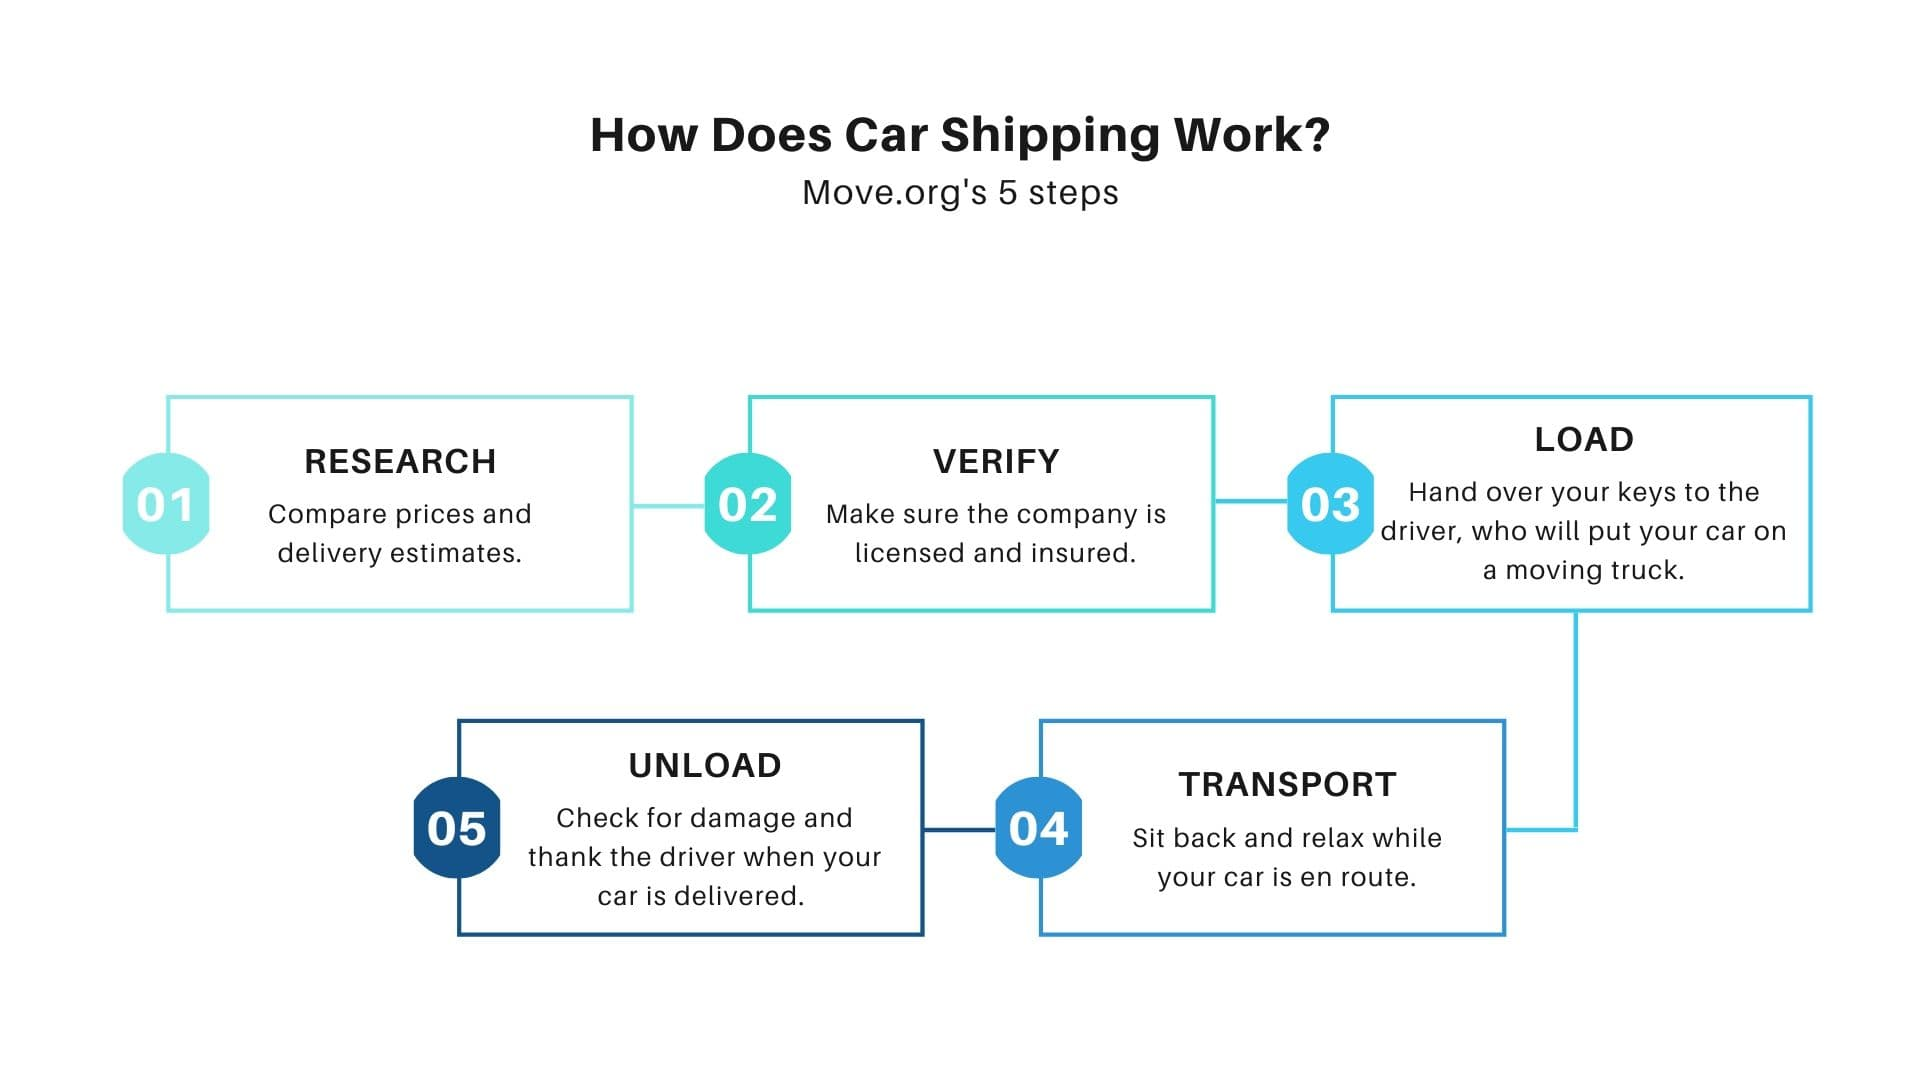 Visual description of Move.org's 5-step process for shipping a car. Step titles are research, verify, load, transport, and unload.